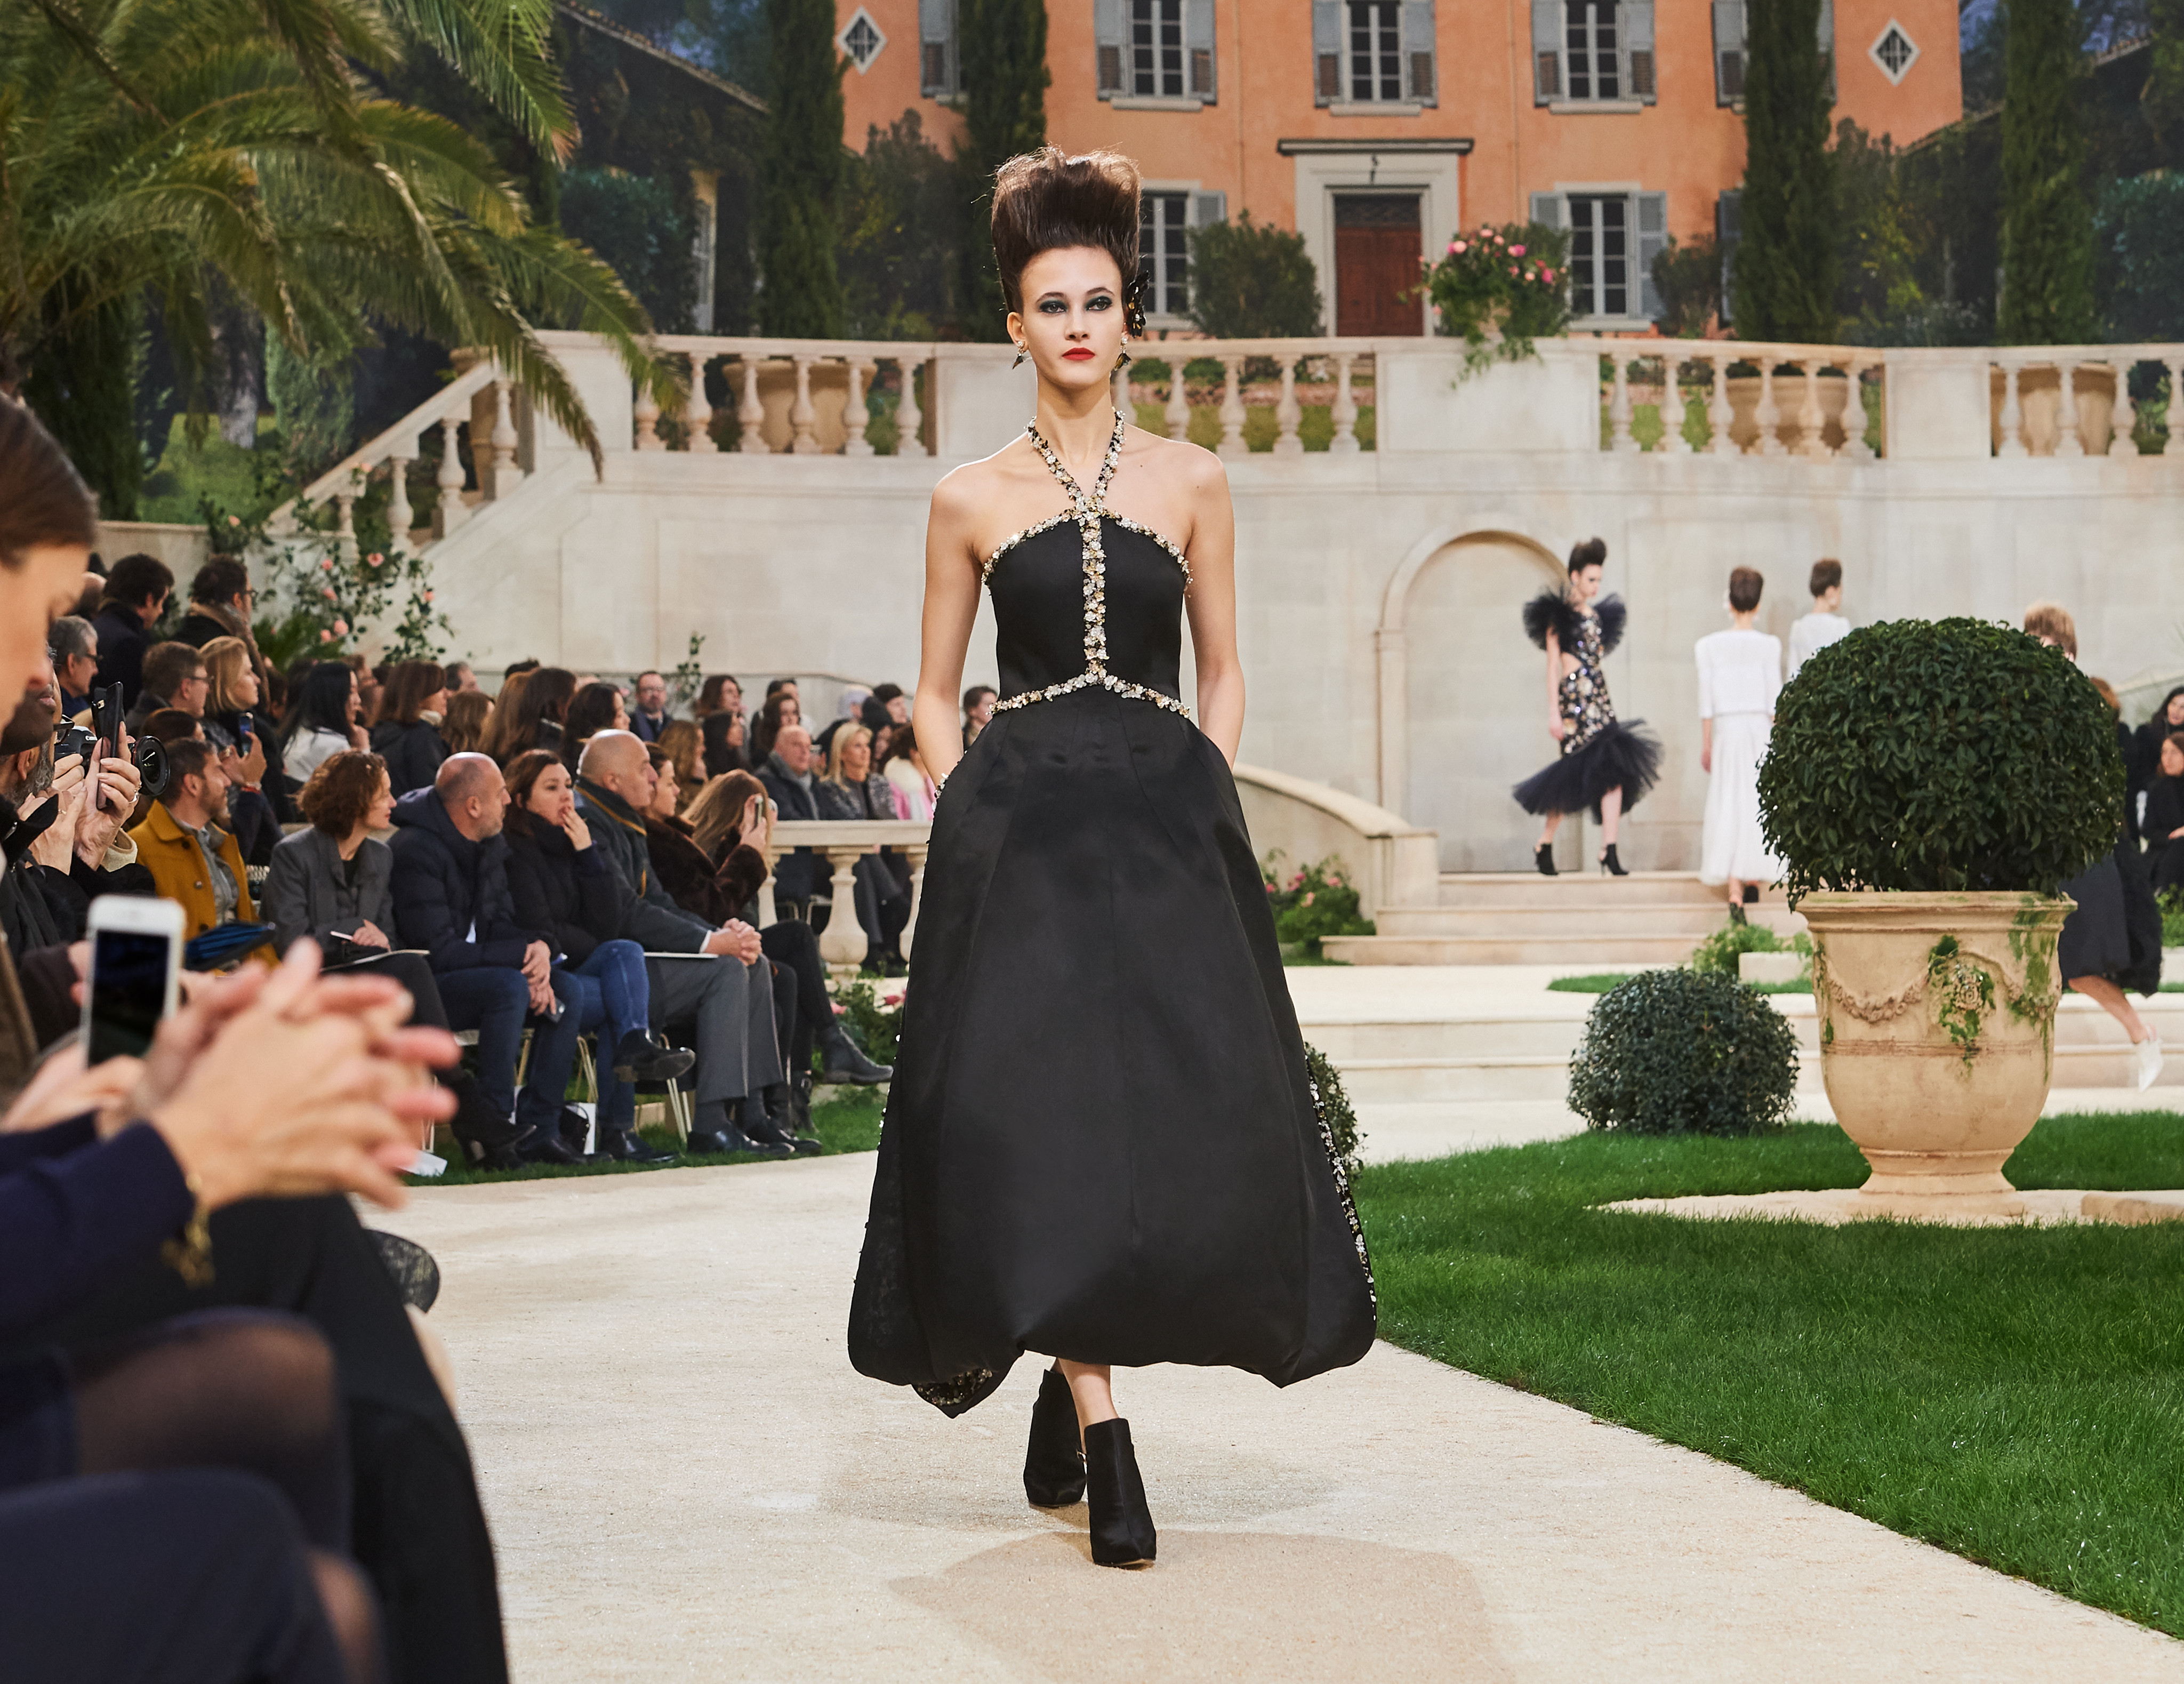 CHANEL AND AN INVITATION TO THE FRENCH RIVIERA